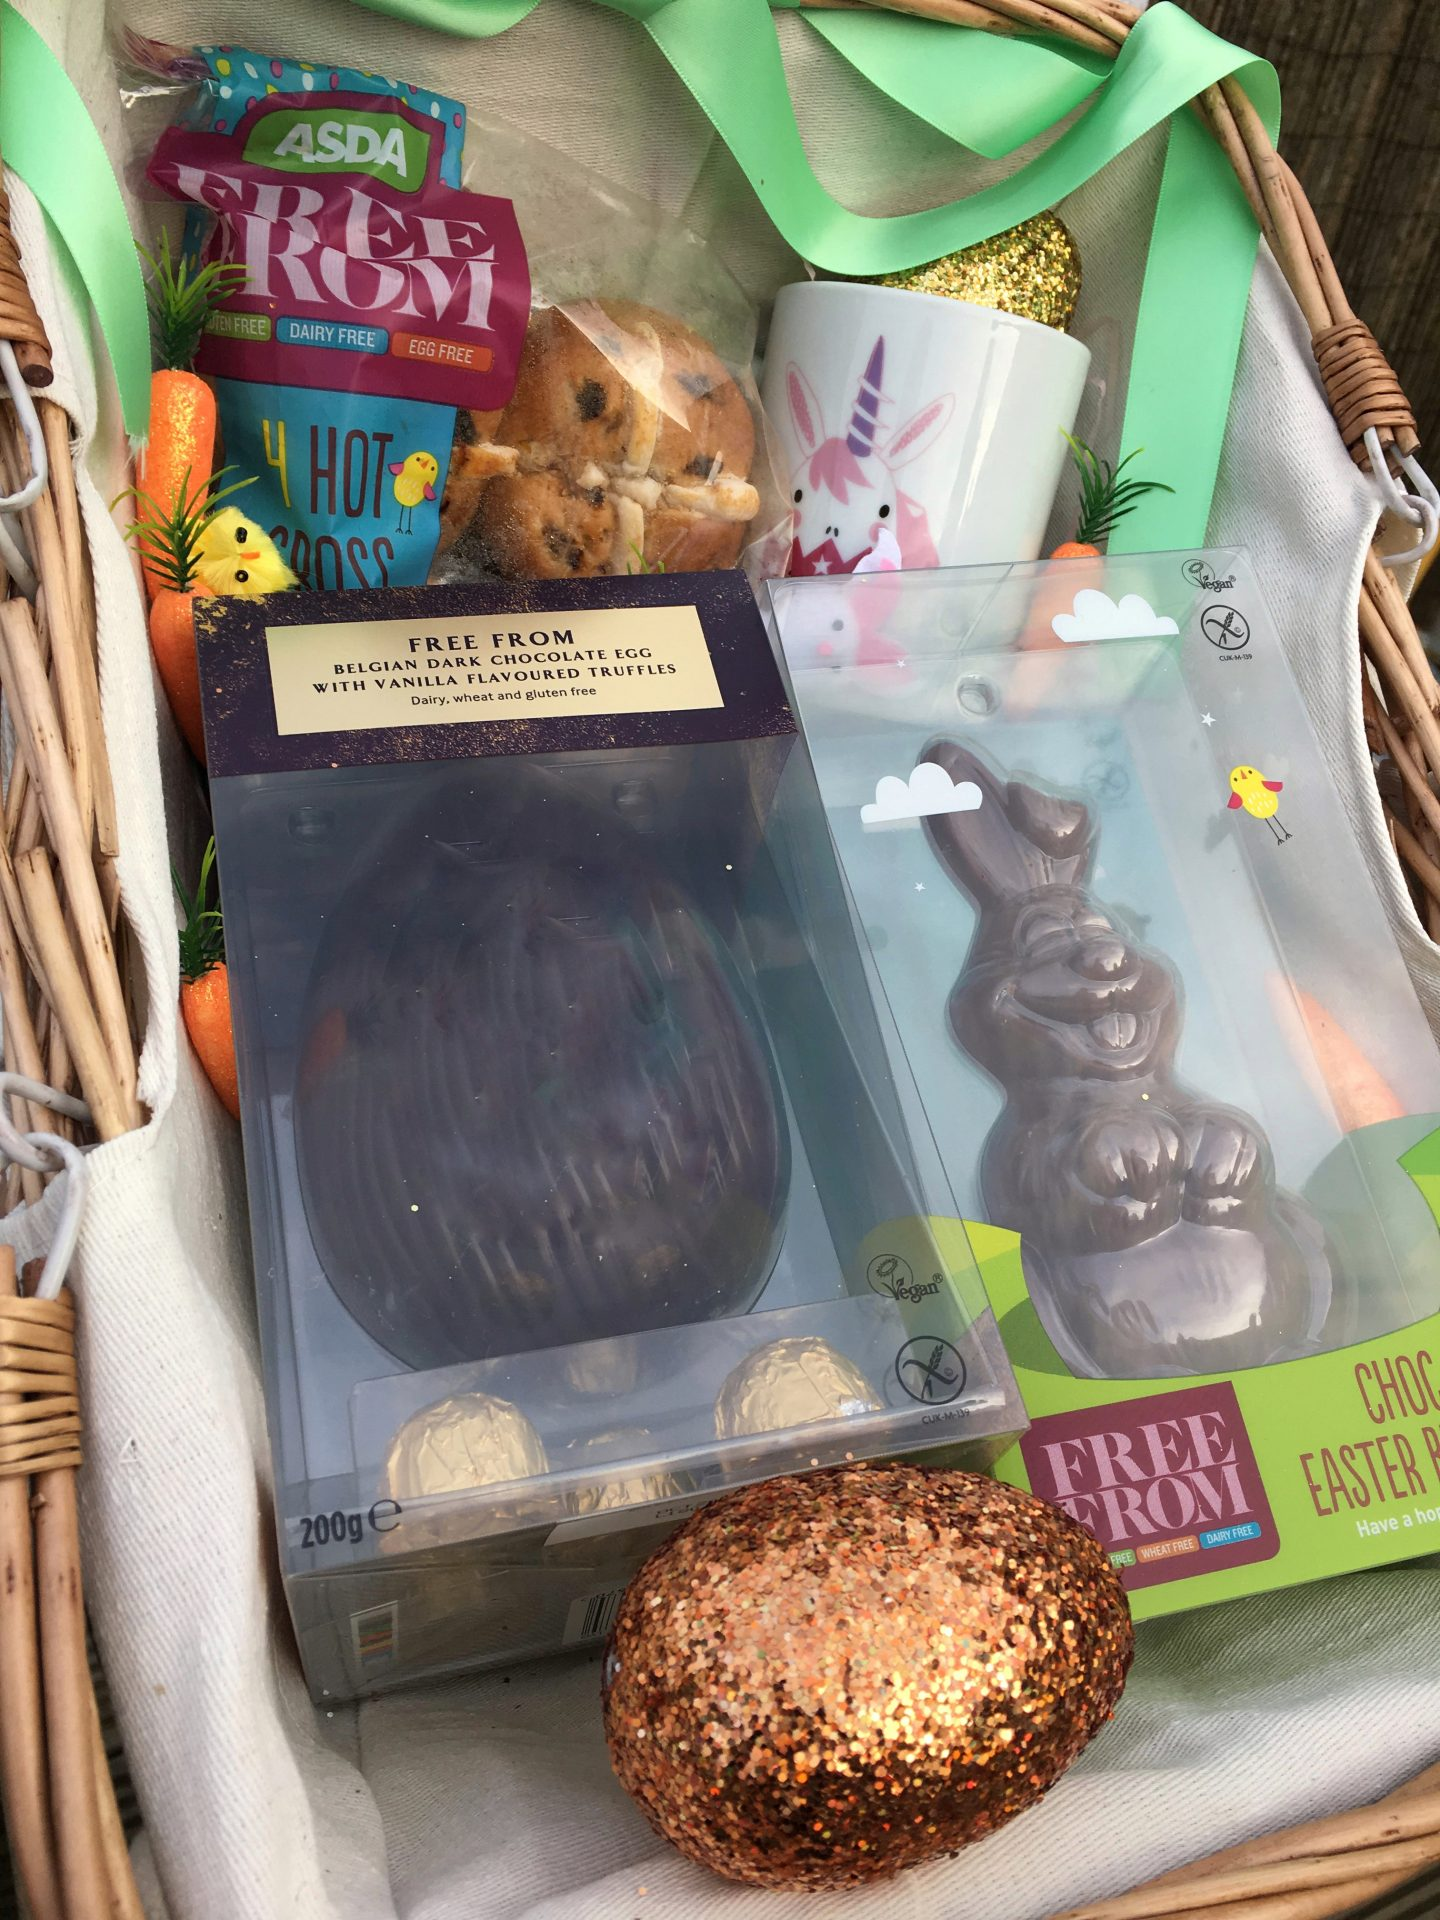 Asdas easter free from range gluten free alice scroll down for more information about asdas free from easter range as well as all of the products they have to offer this year negle Images